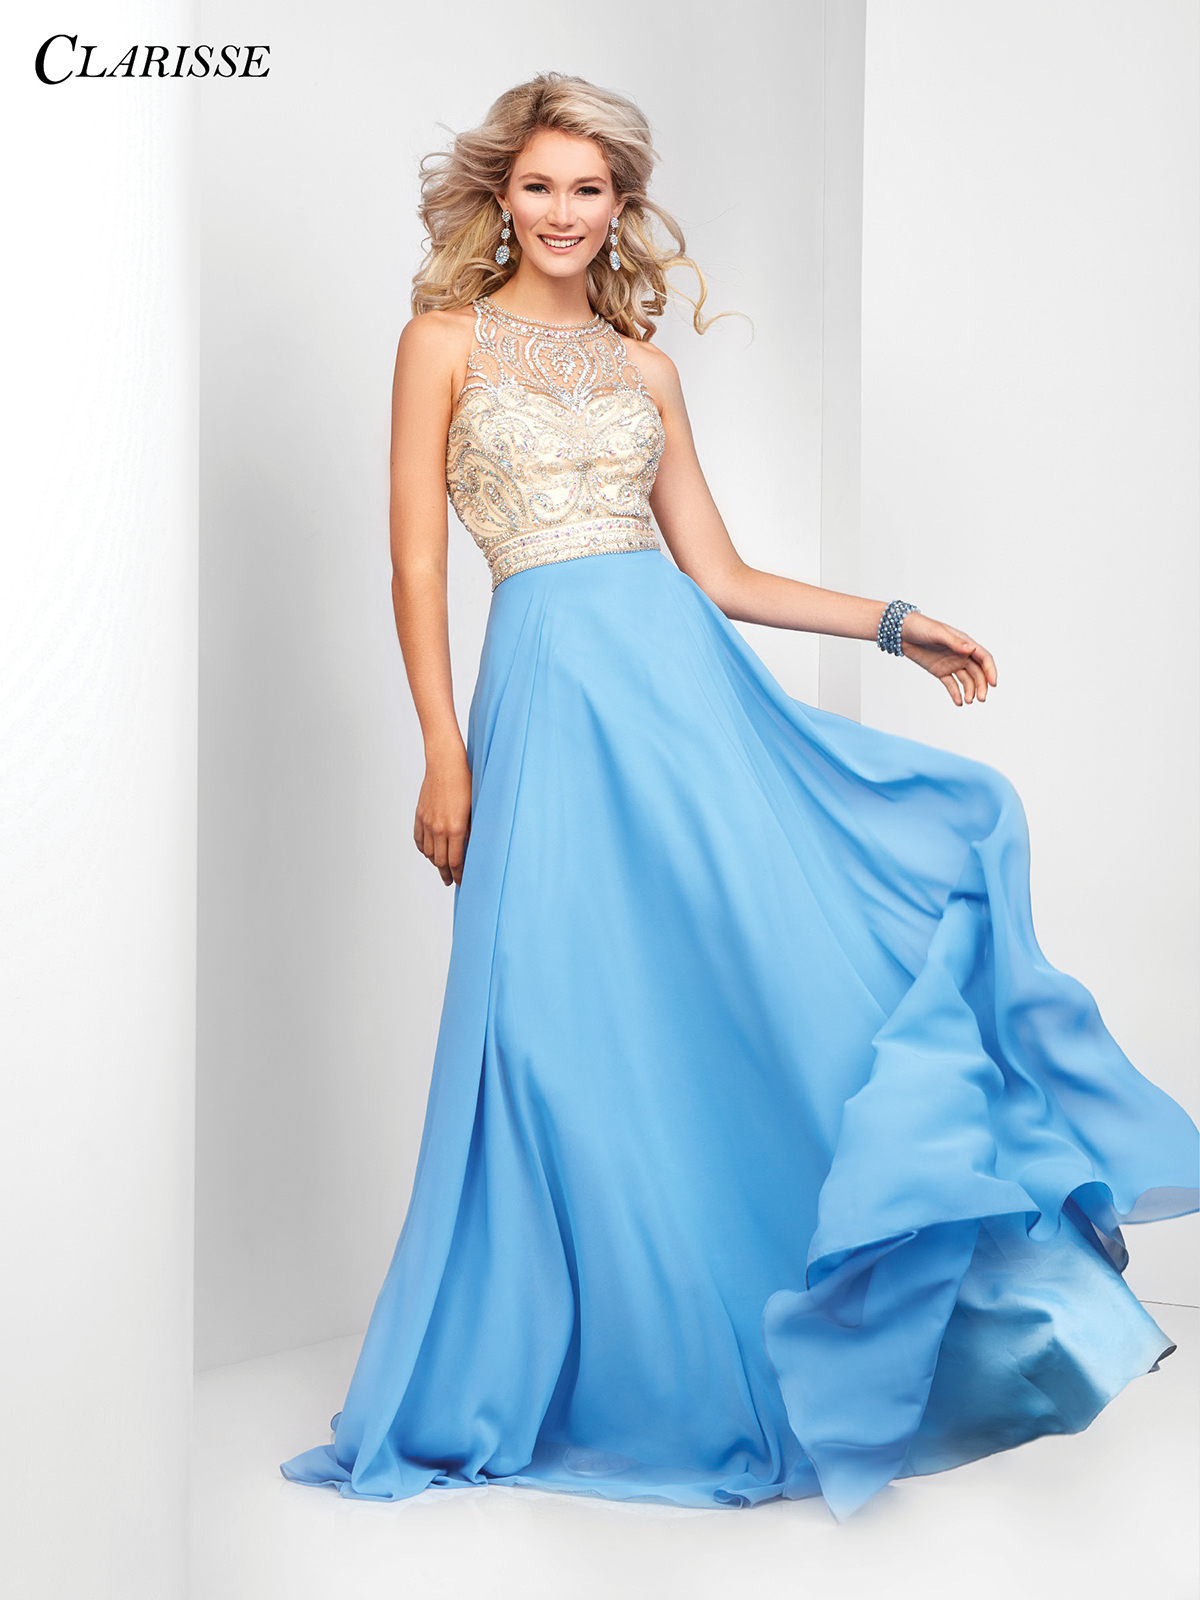 2018 Prom Dress Clarisse 3465 | Promgirl.net